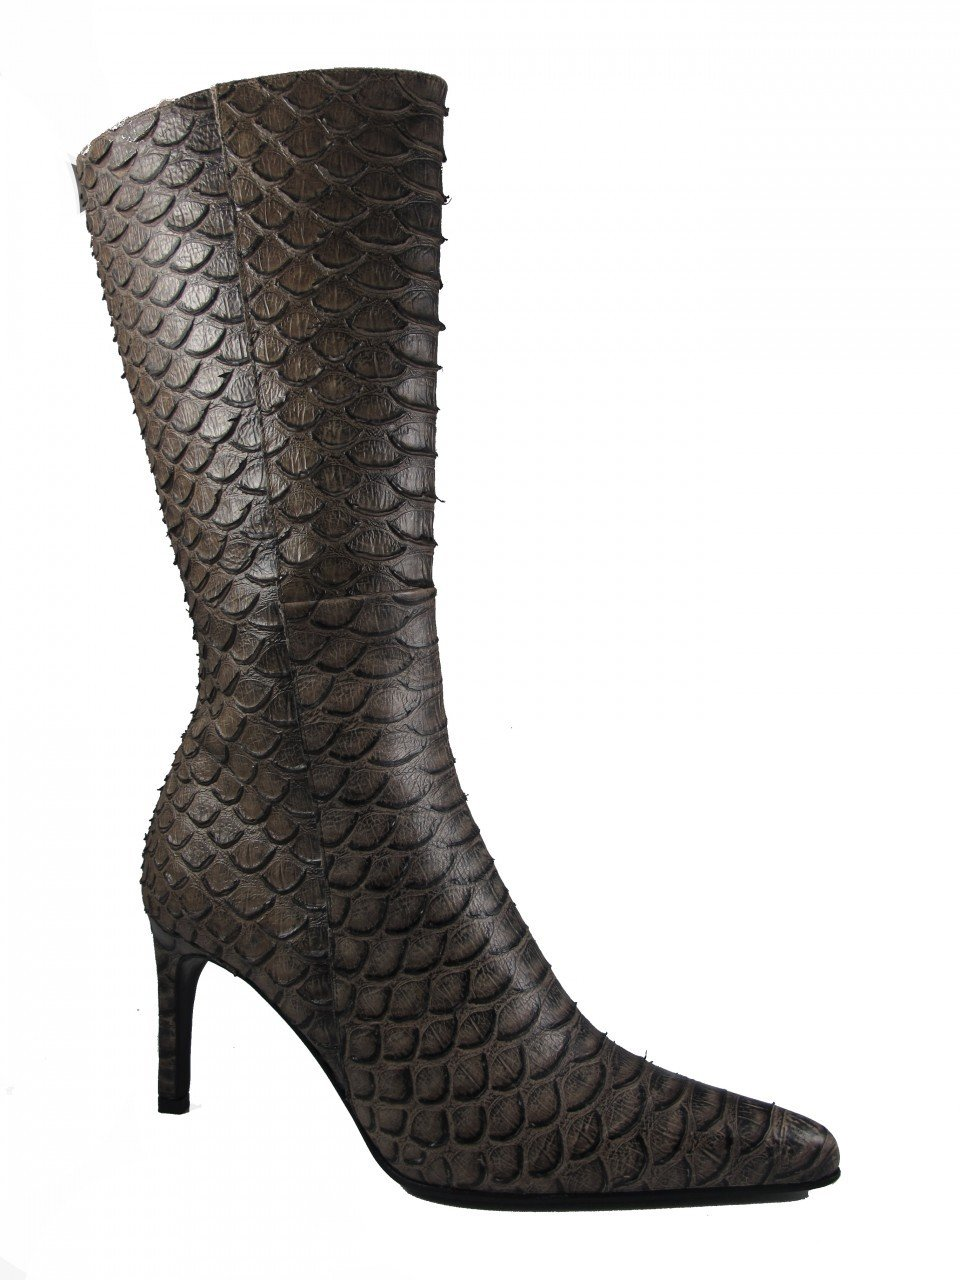 DA'VINCI 4051 Women's Italian Leather Python Print Dress/Casual Low Heel Pointy Toe Boot, Taupe Size 38